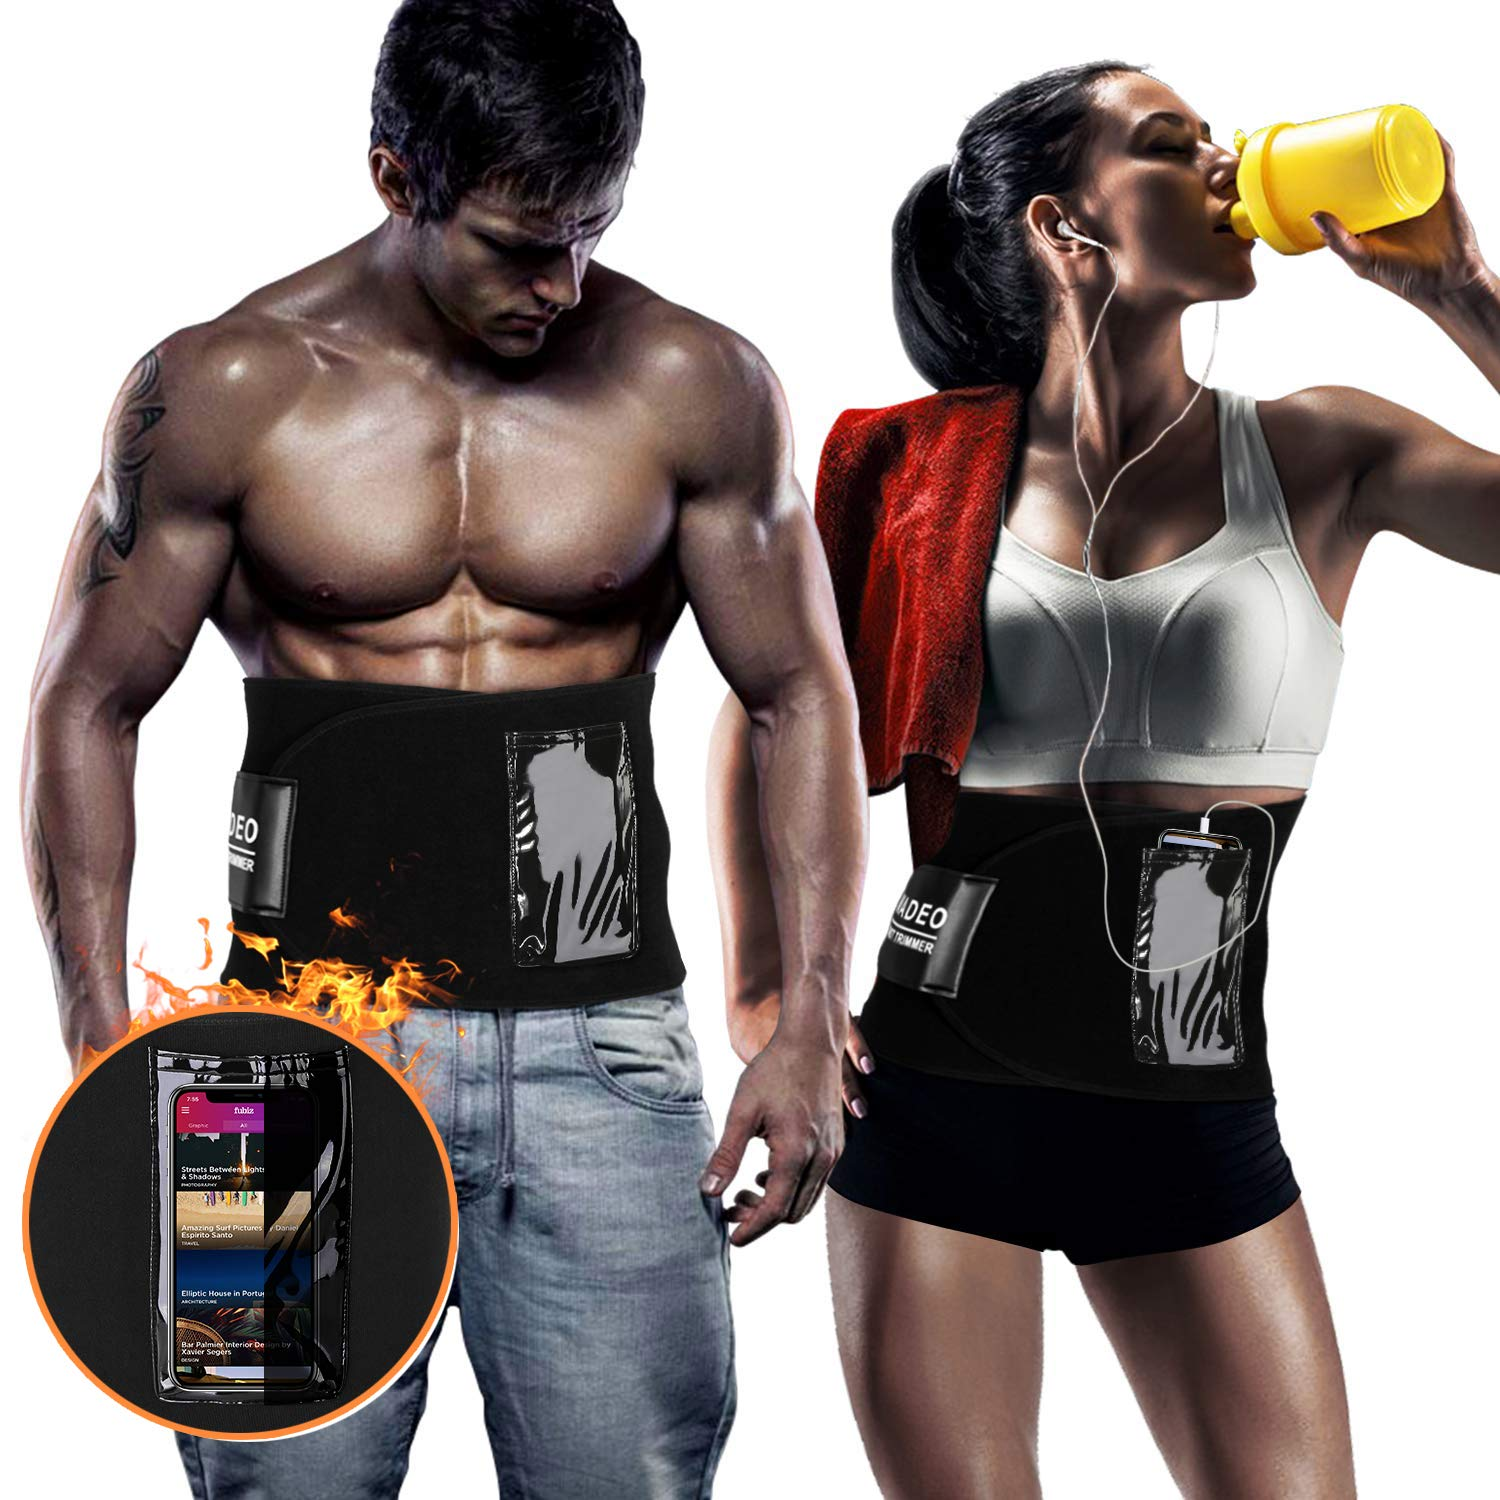 WADEO Waist Trimmer Belt with Pocket for Men Women Waist Trainer Body Shaper Band Adjustable Straps for Fitness Neoprene Sport Wrap Lower Back Lumbar Support Sauna Suit Effect Abdominal Trainers